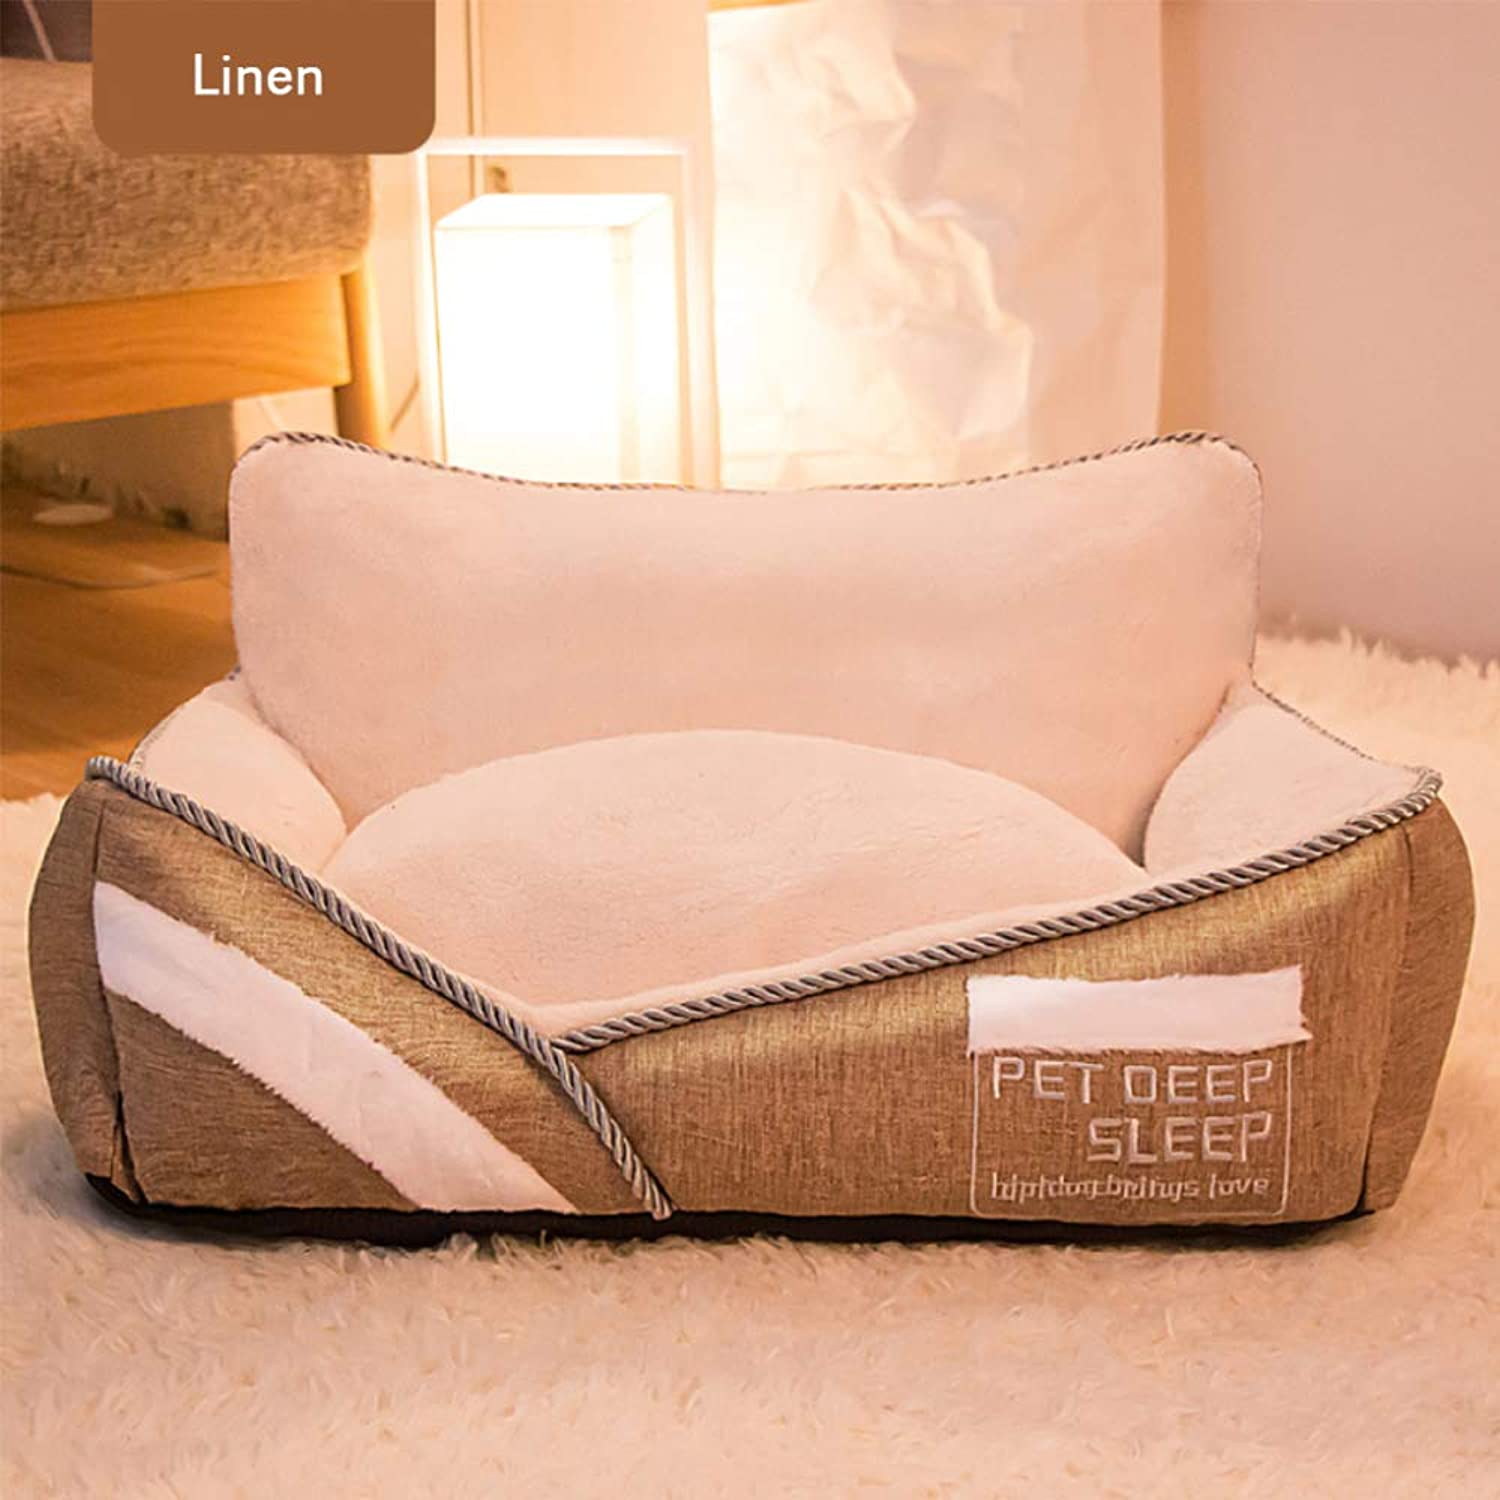 Pet Nest, Beveled Letter, Embroidered Square, Removable And Washable Small Dog's Nest, Granular Blended Cloth, Four Seasons Universal